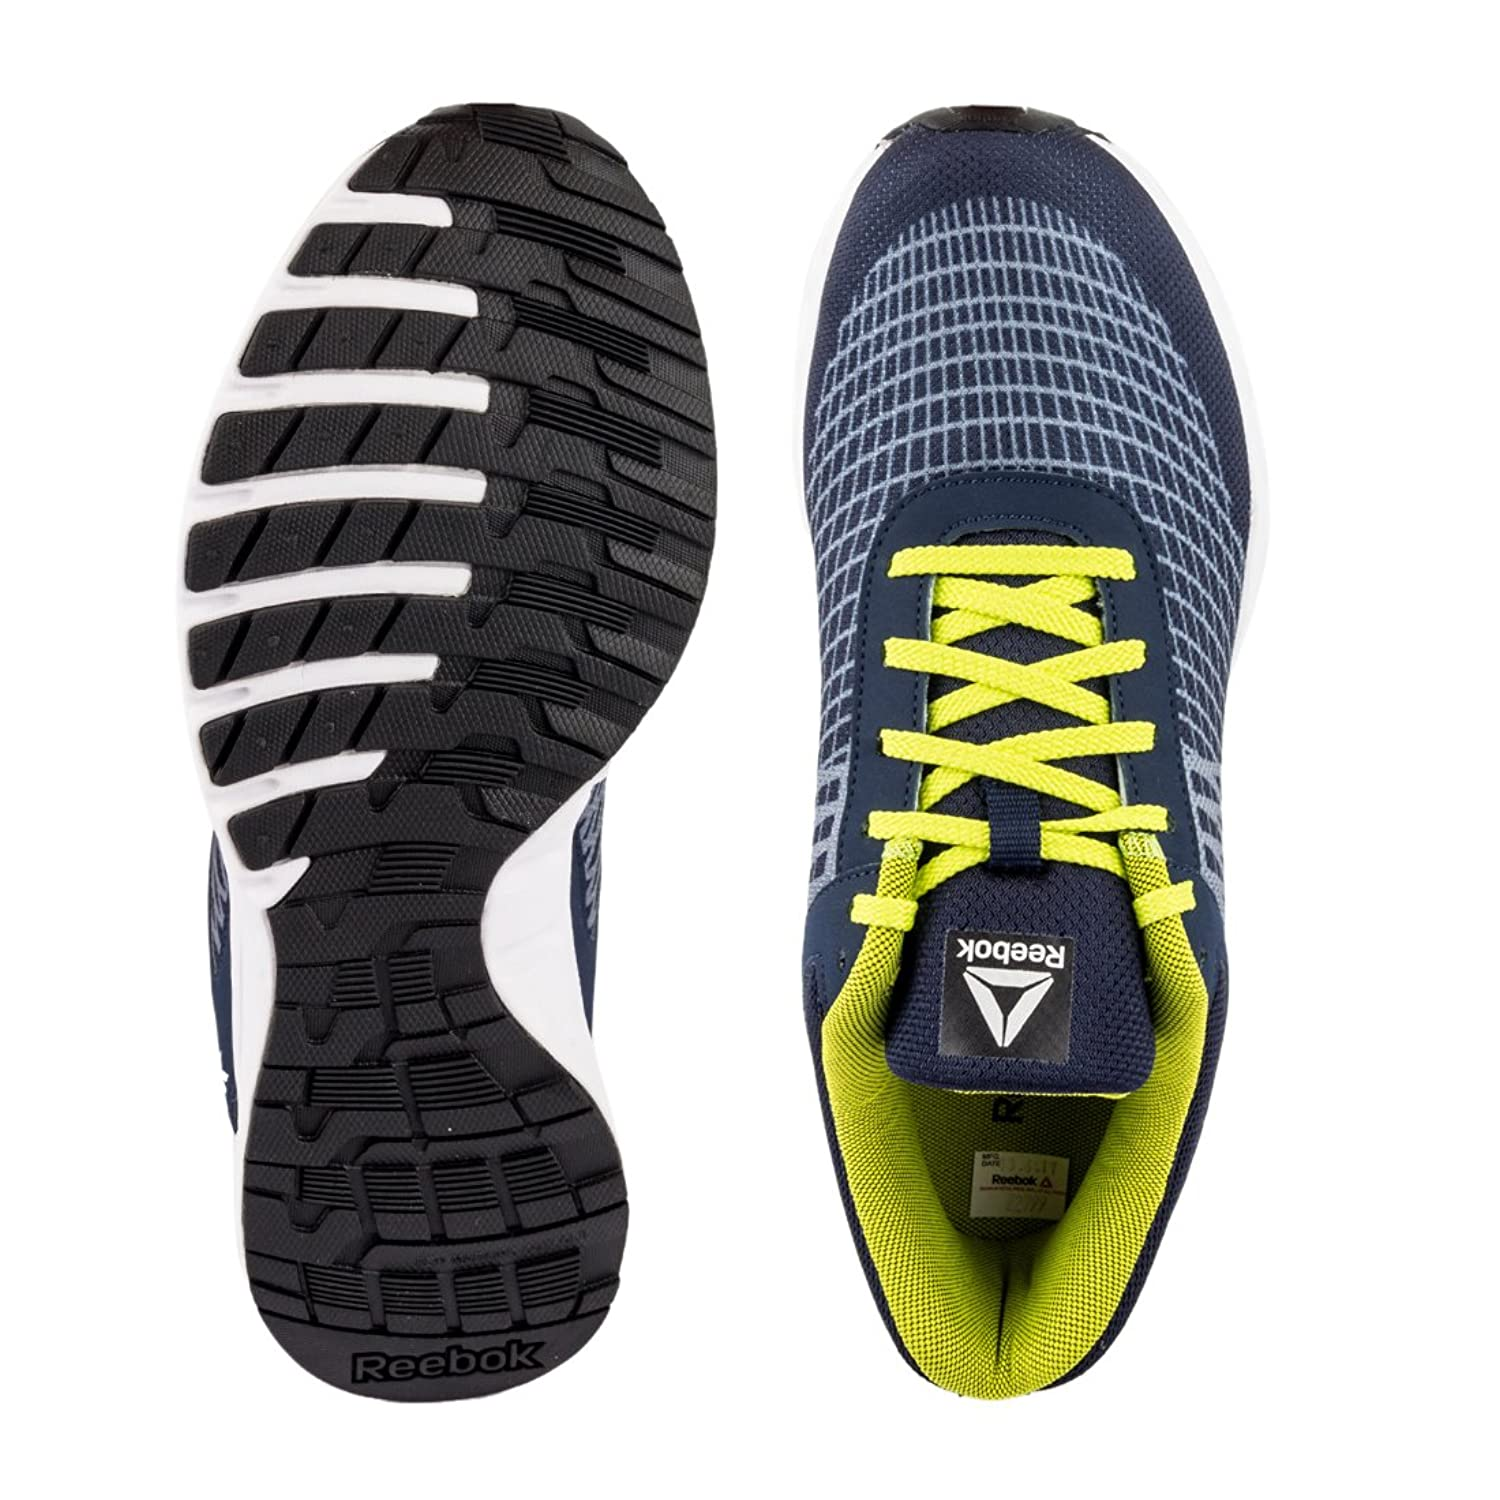 Reebok Zapatillas Para Correr Amazon India uLrkA